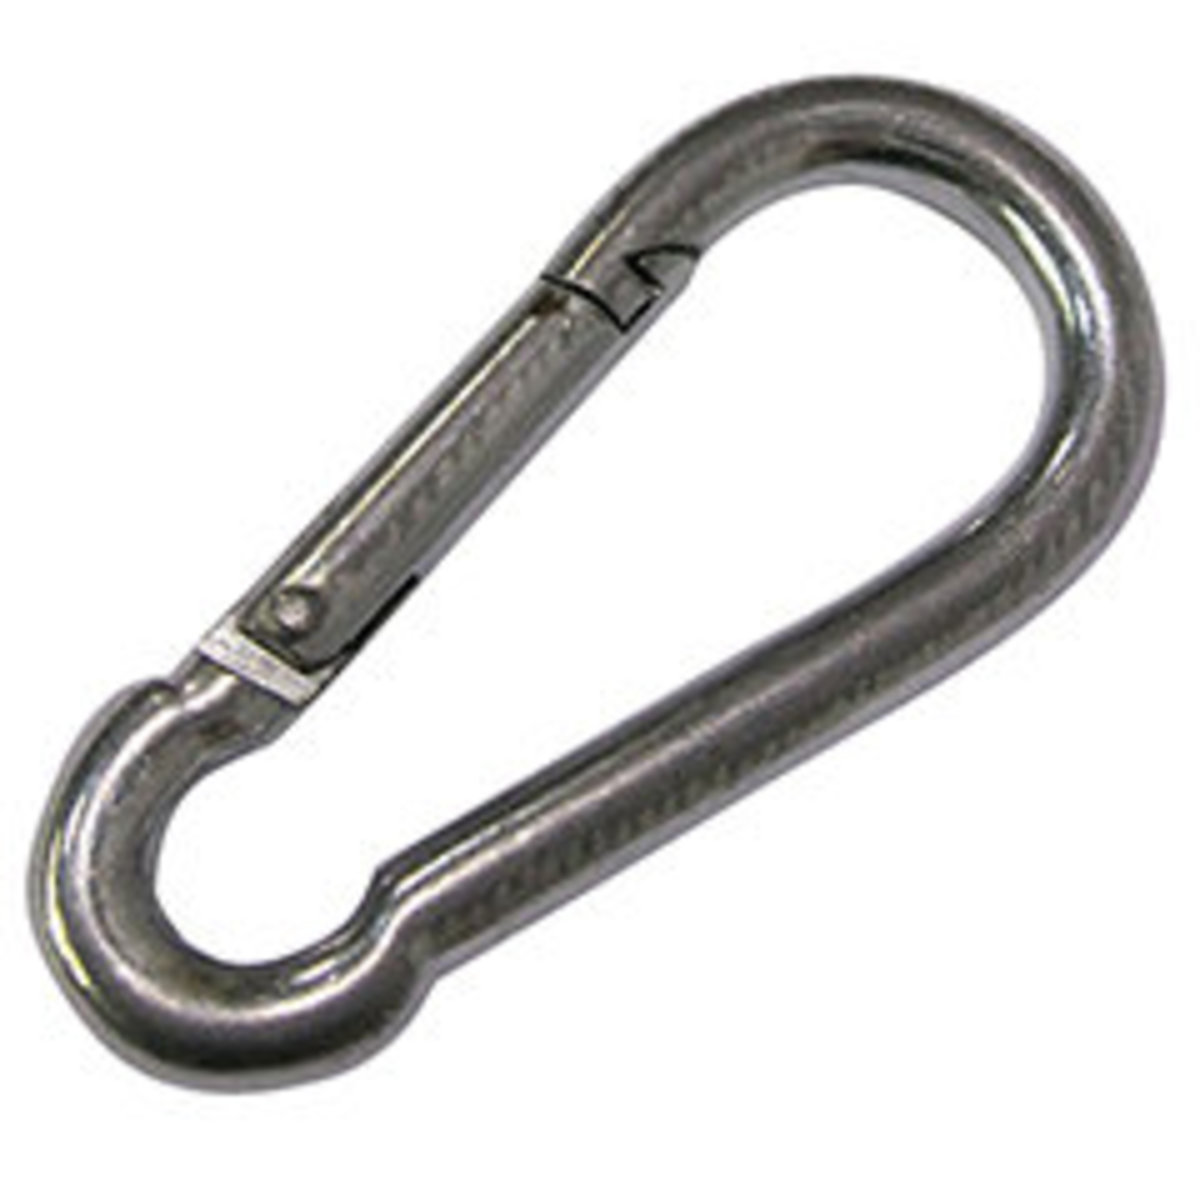 View larger image of Netting Accessory - Carabiners